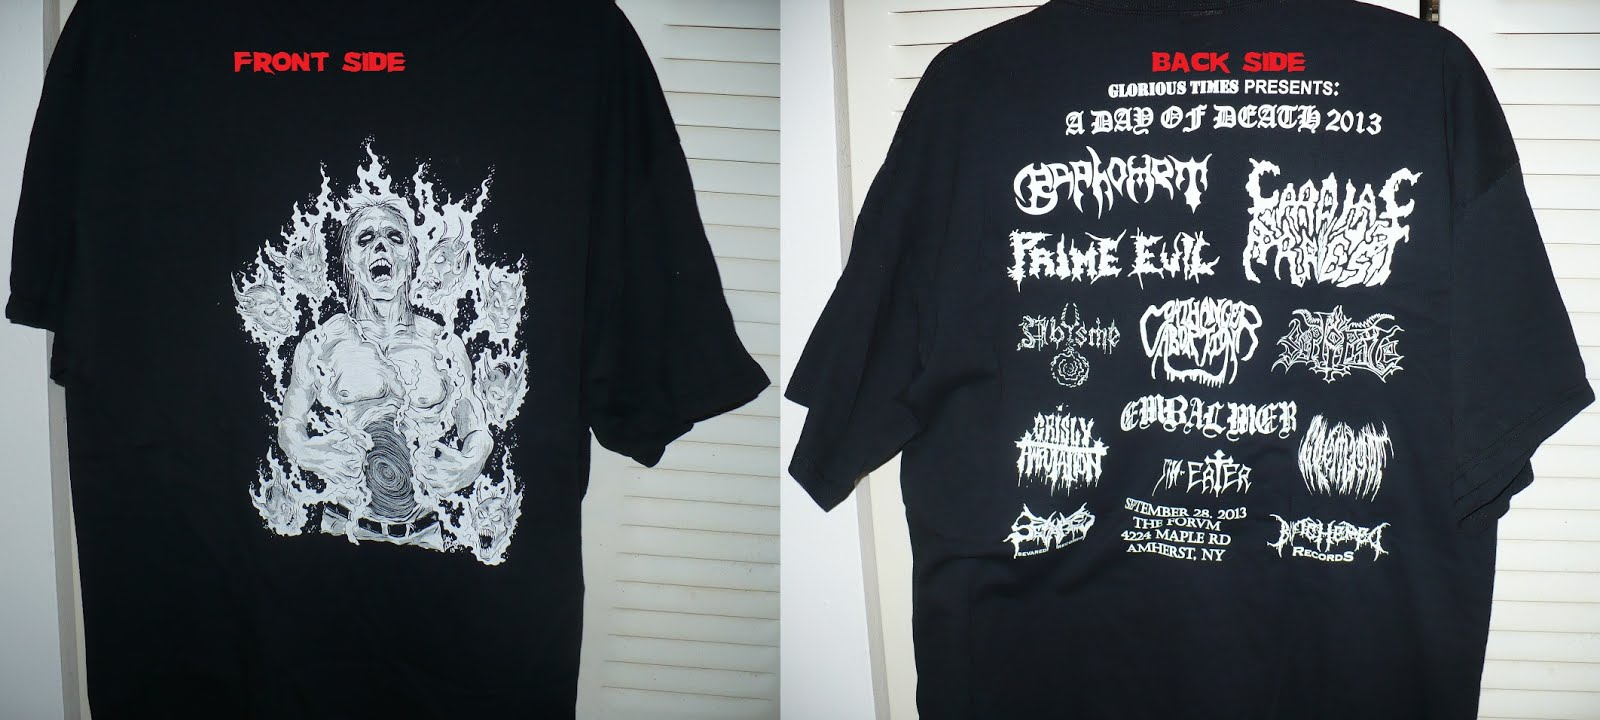 DAY OF DEATH FEST 2013 T-shirt